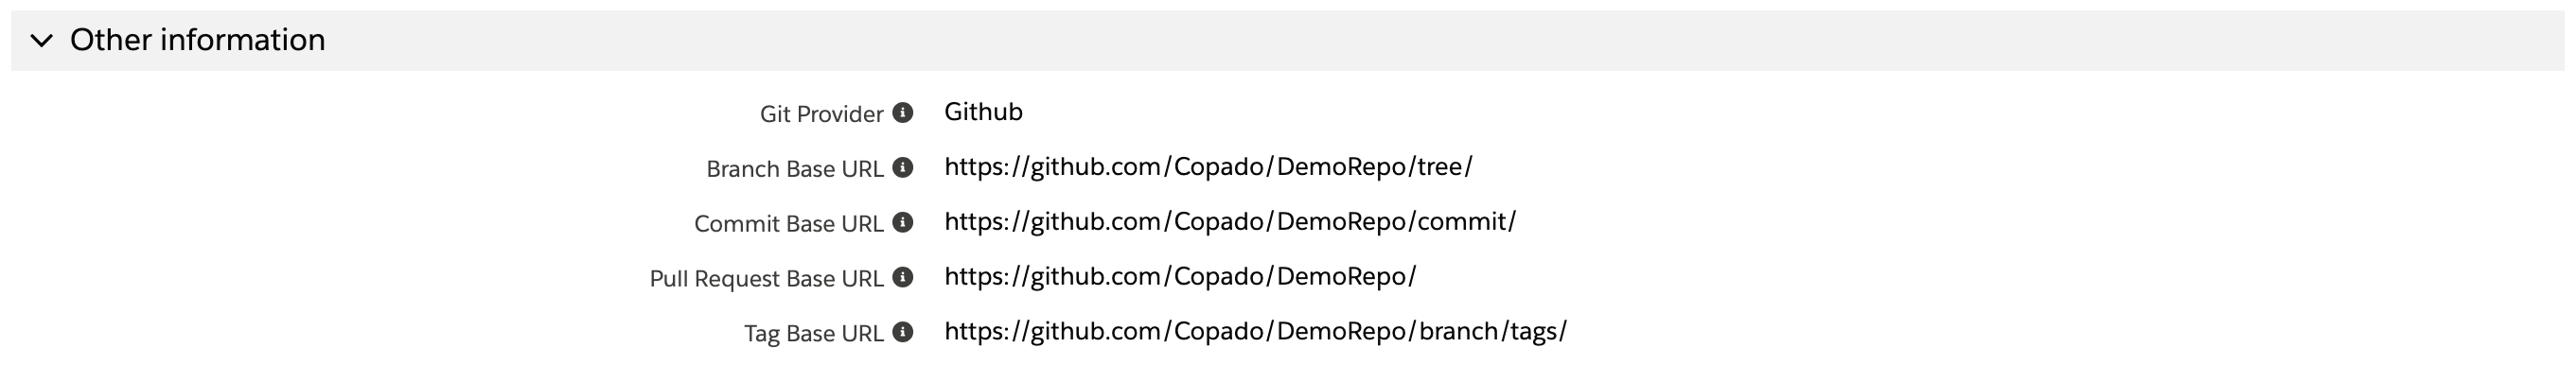 Quick Links to Your Git Repository - Copado Solutions